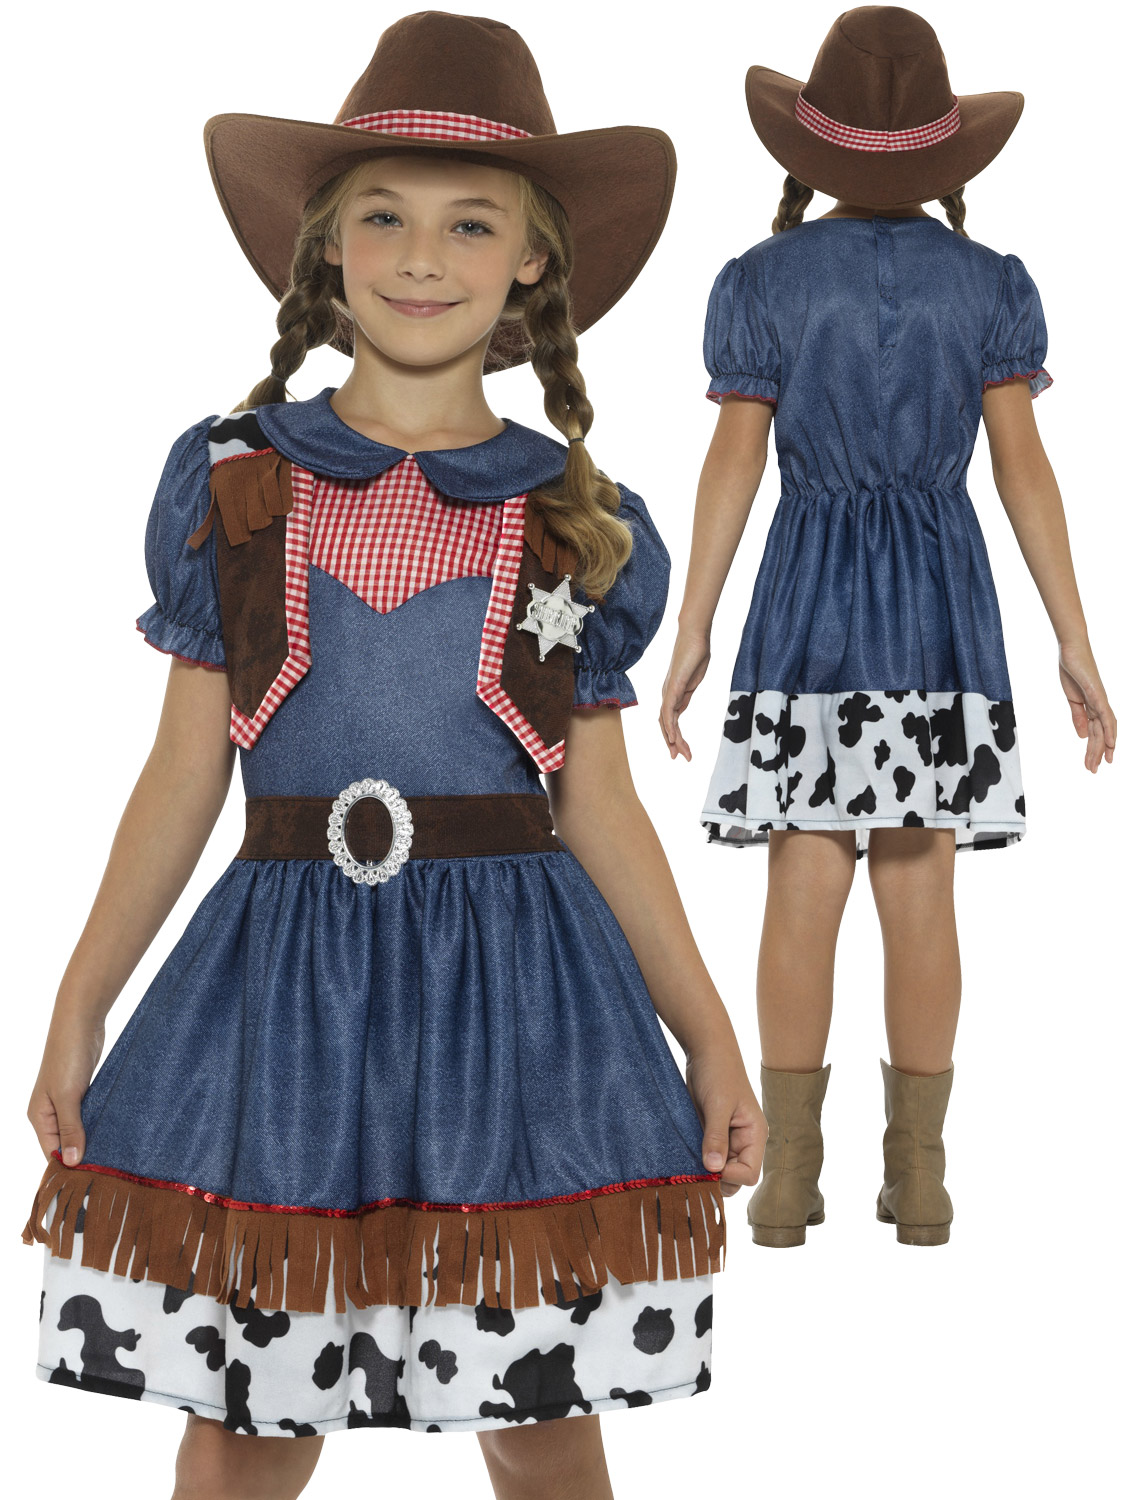 Girls Texan Cowgirl Costume Wild Western Jessie Fancy Dress Book Week Outfit | eBay